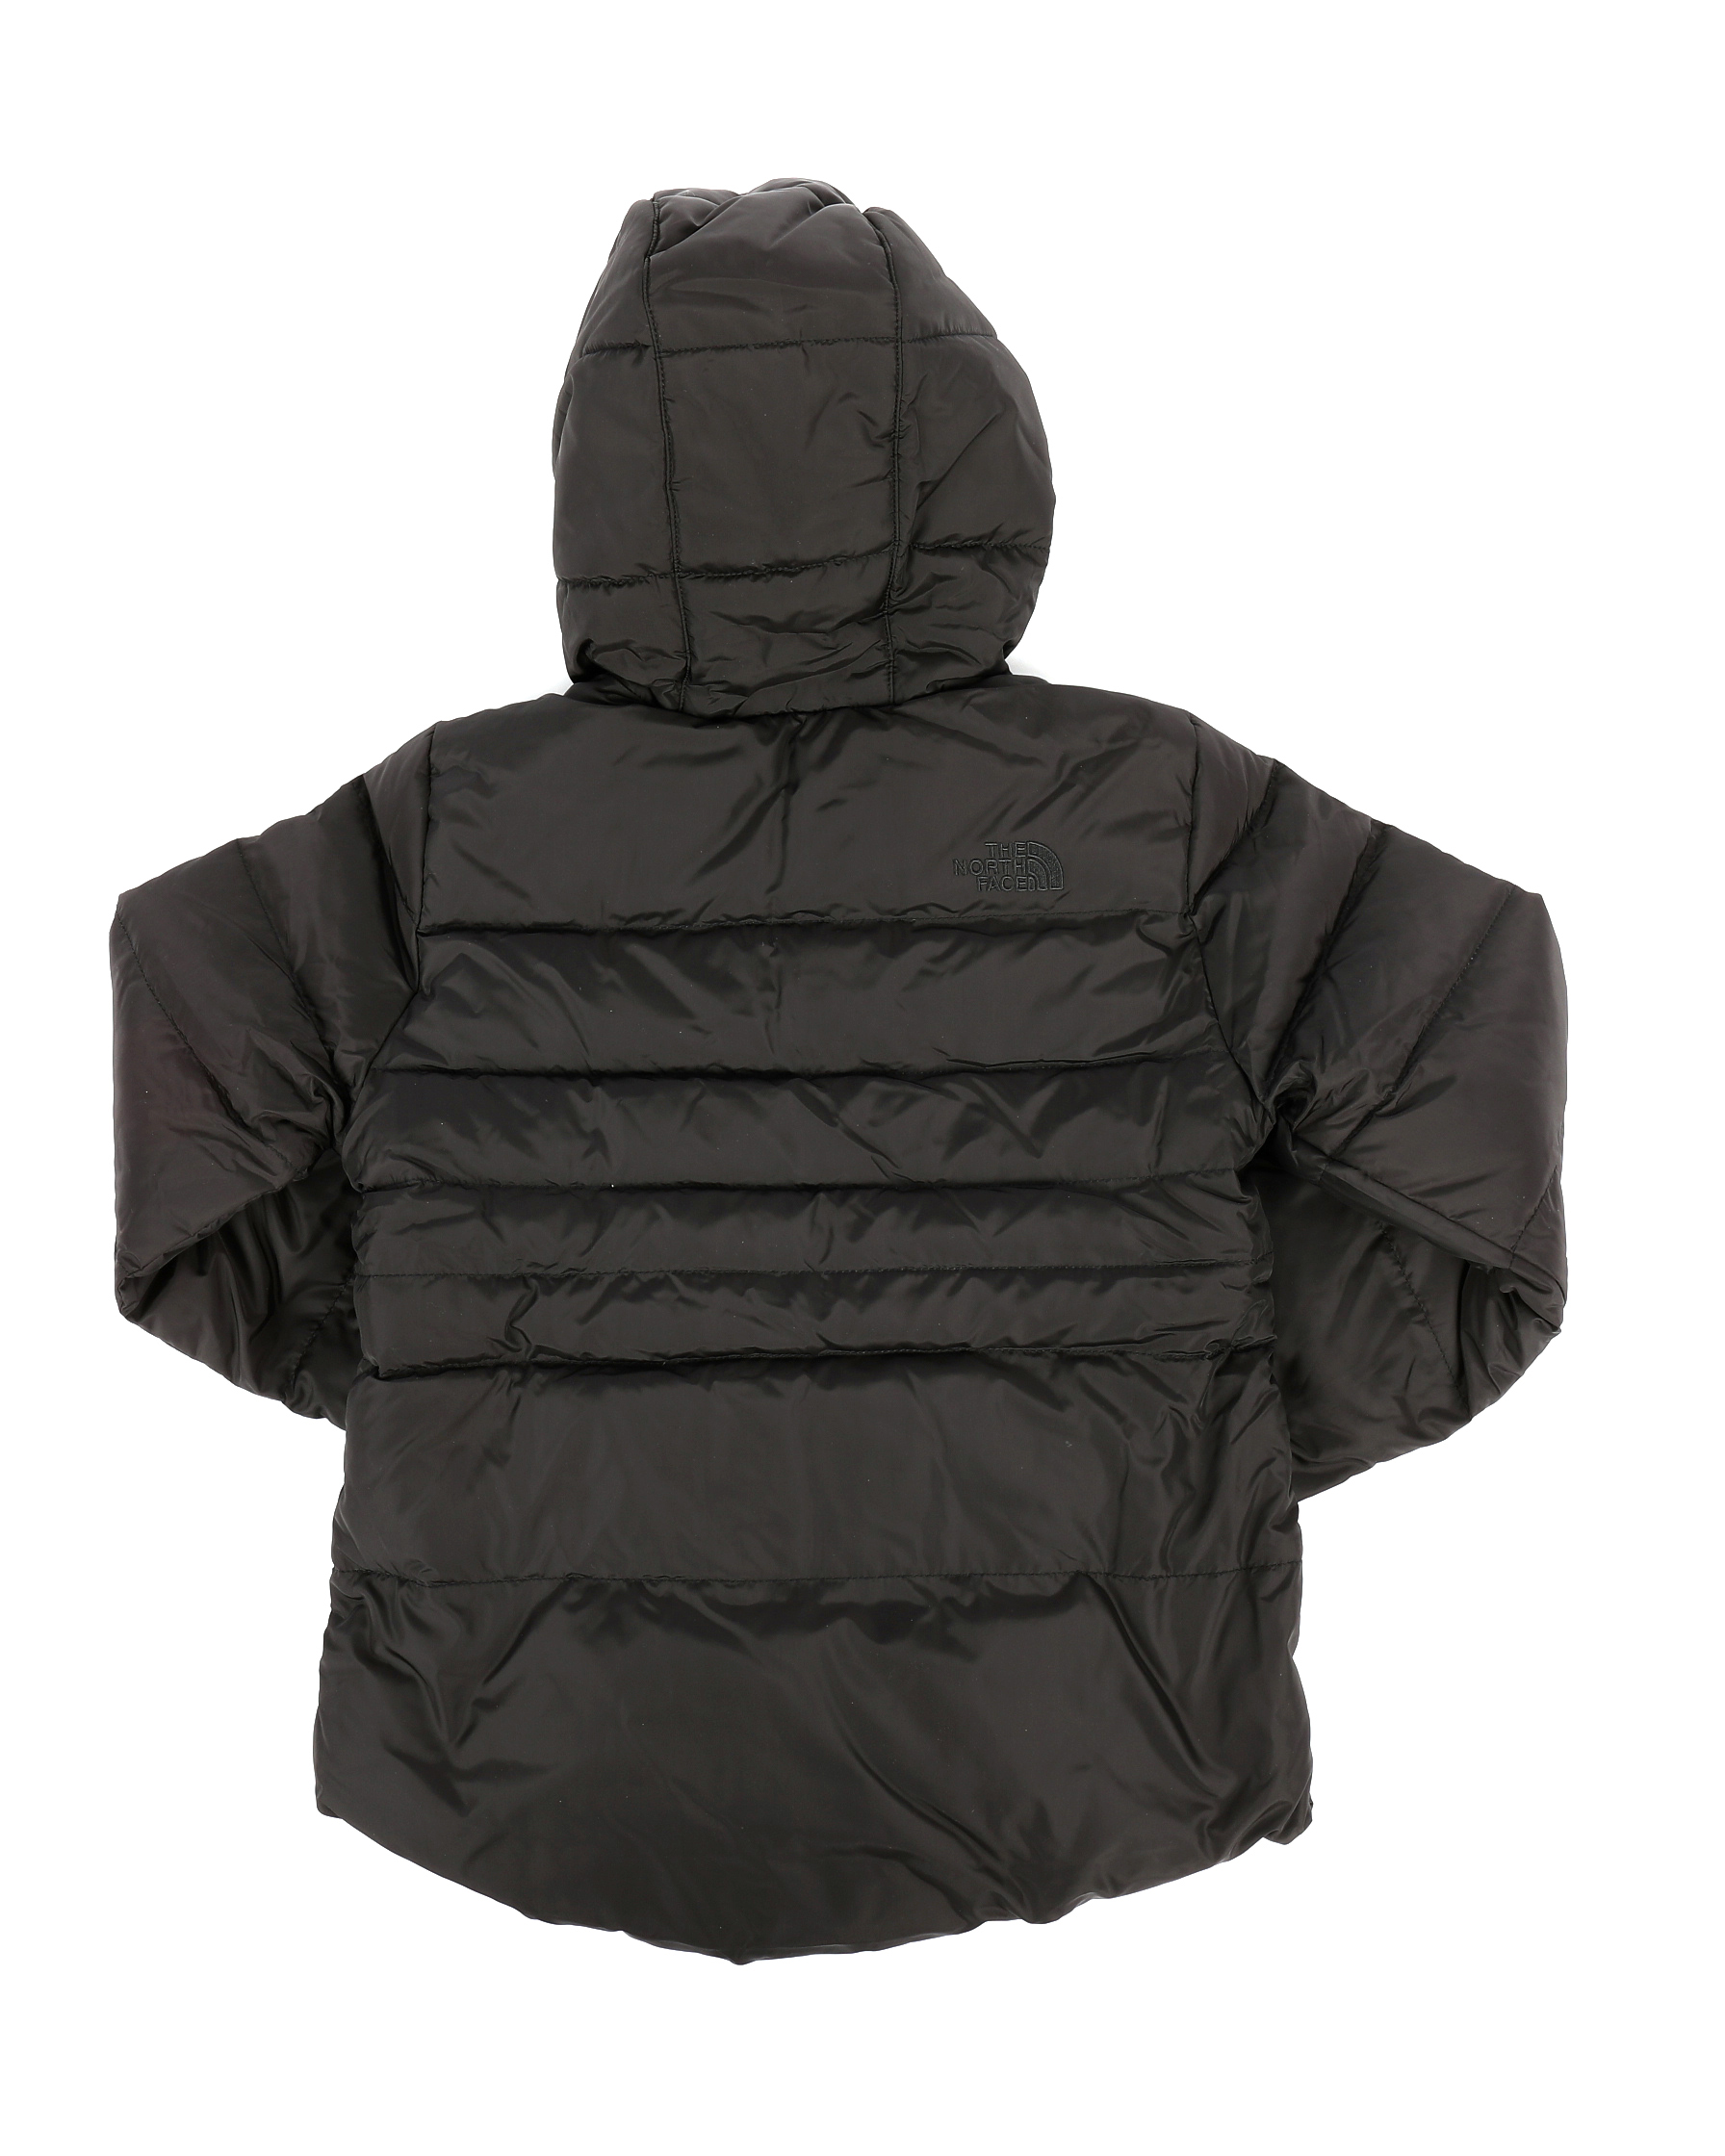 fec3a723d Buy Moondoggy 2.0 Down Jacket (7-18) Girls Outerwear from The North ...